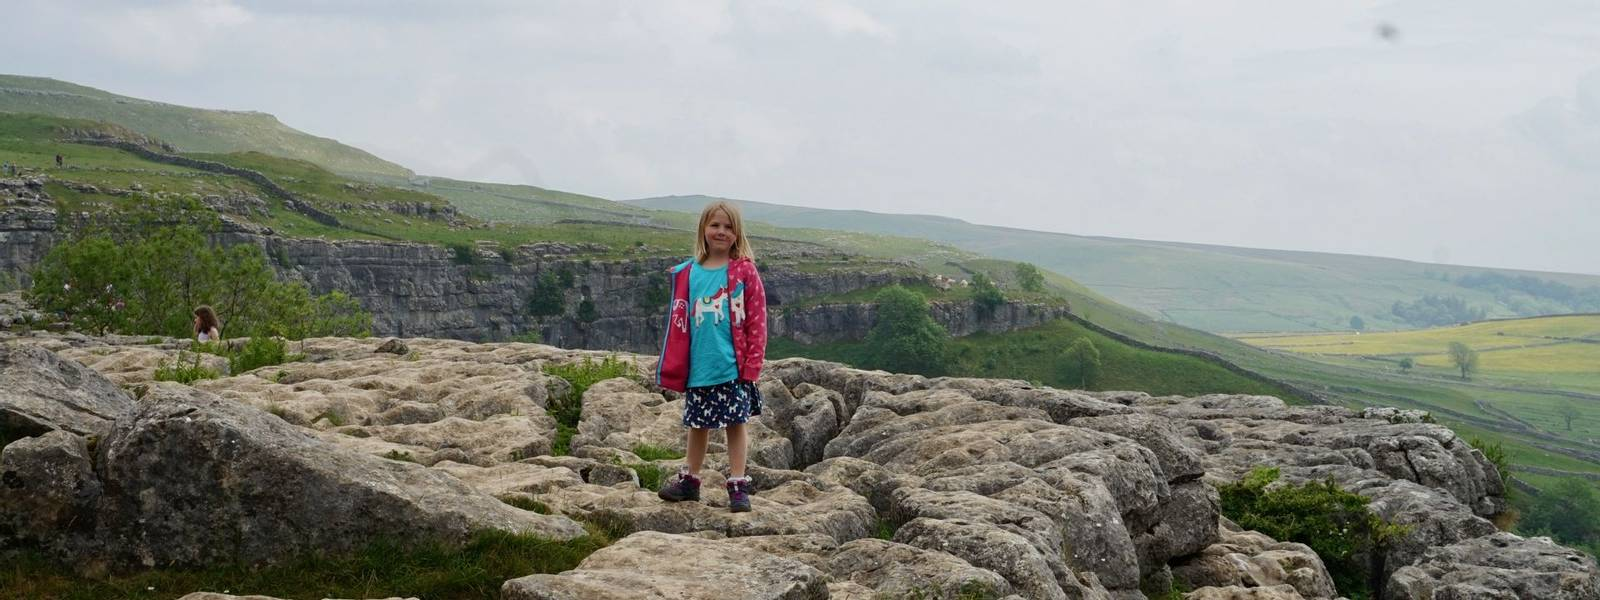 Malhamdale Family Holiday